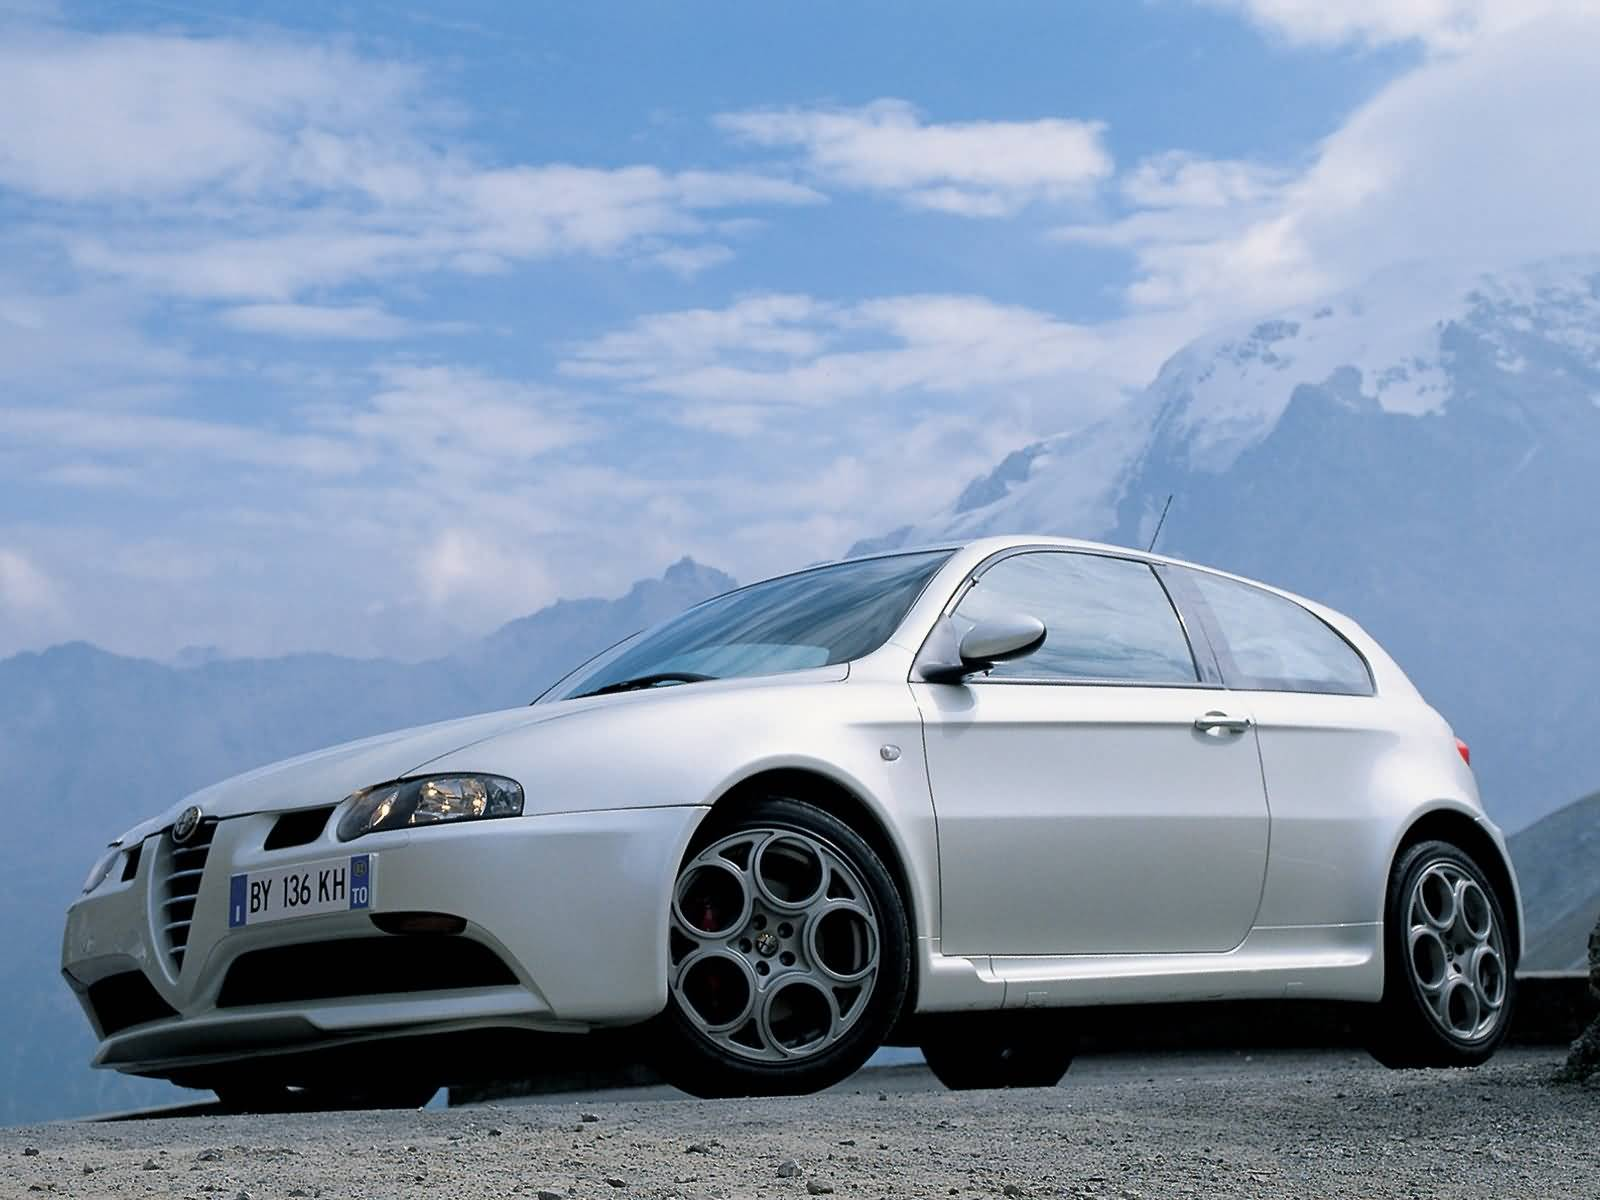 Alfa Romeo 147 GTA Car